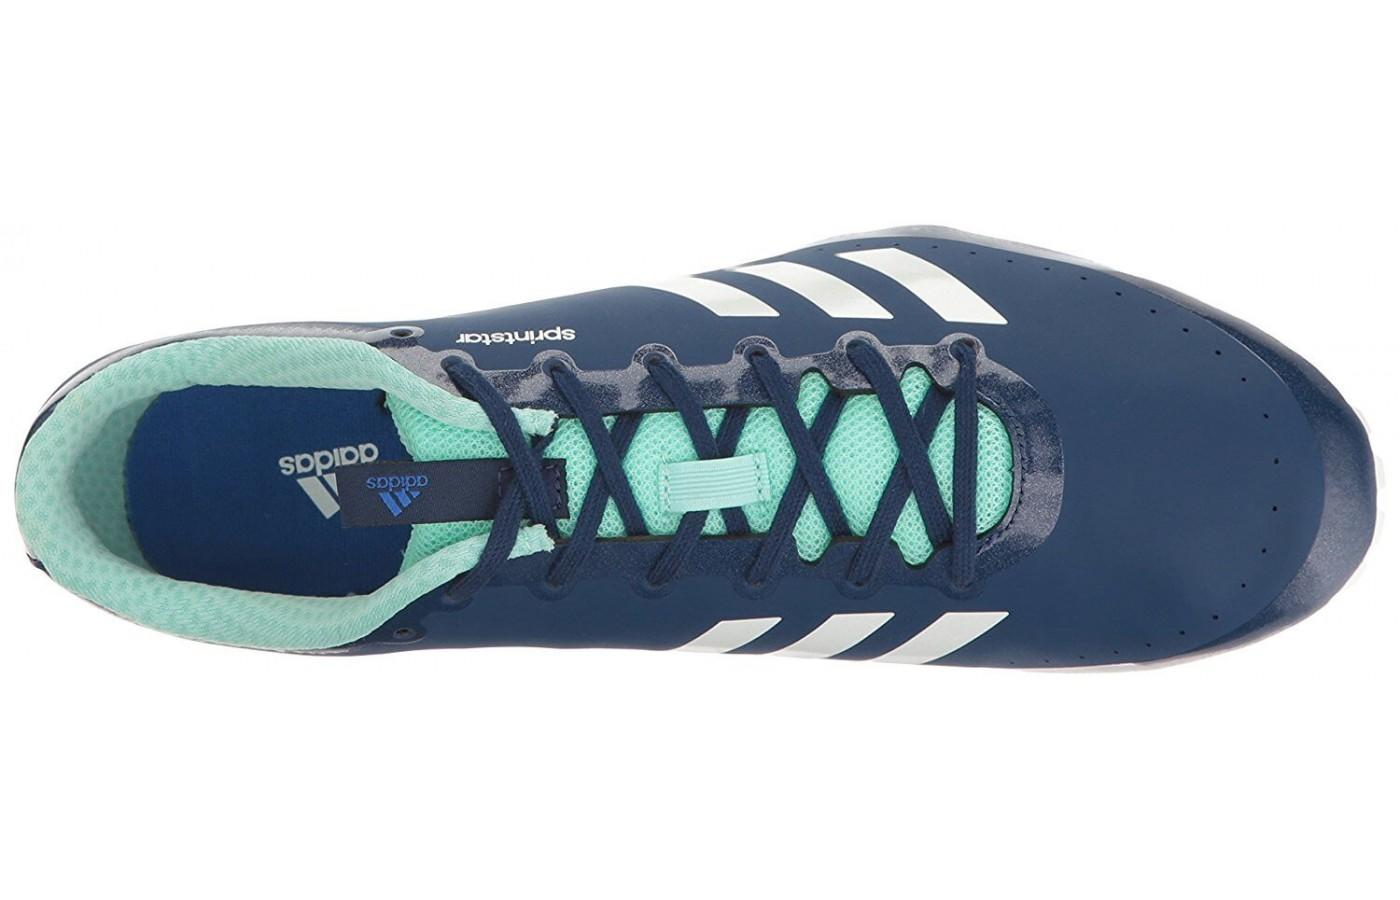 The Adidas Sprintstar has a SPRINTWEB mesh upper for lightweight breathability